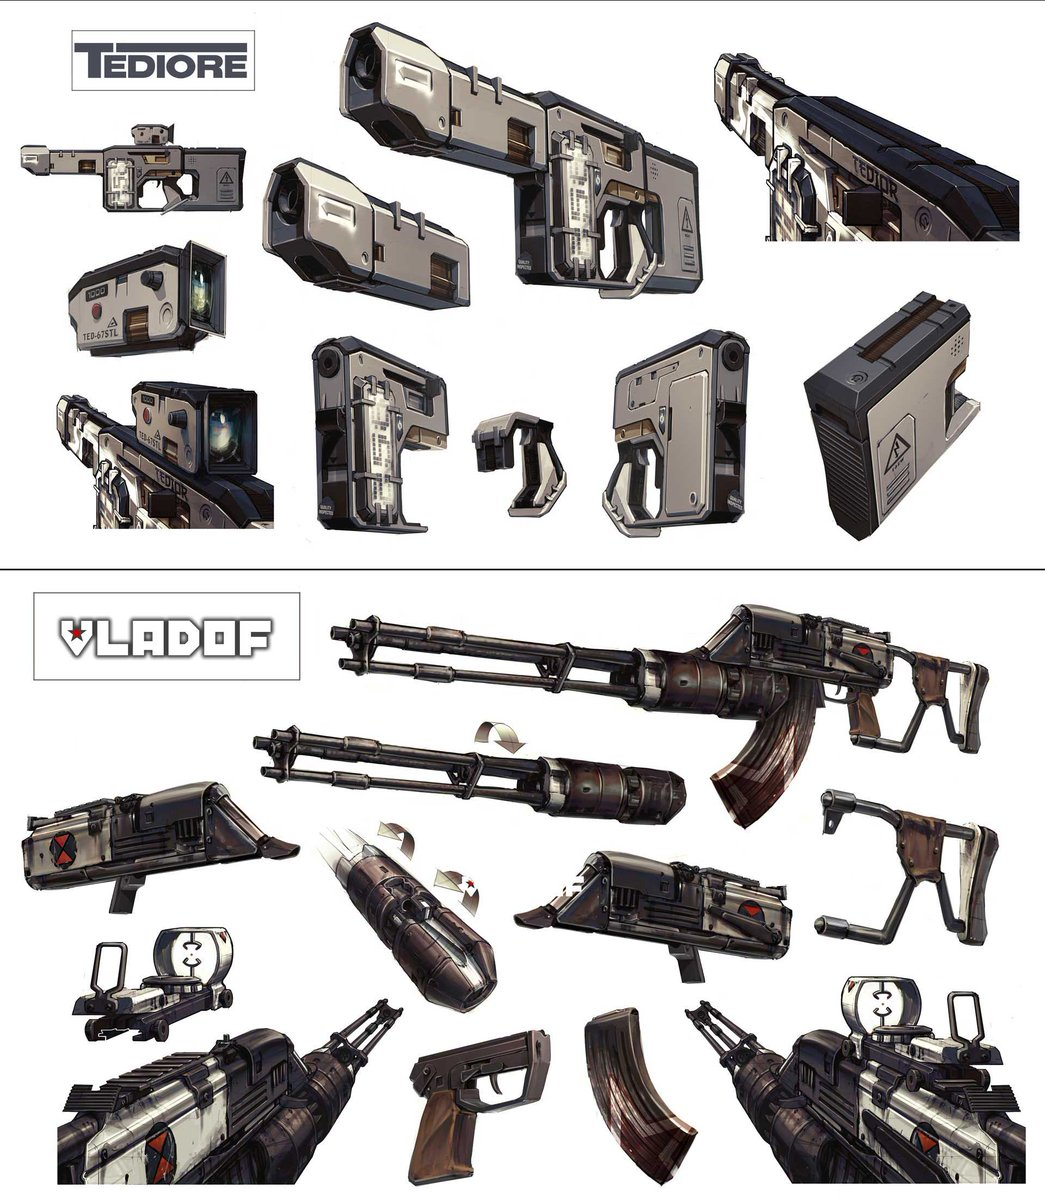 Each Borderlands 2 manufacturer has a unique look and style for their weapons. Which design is your favorite?